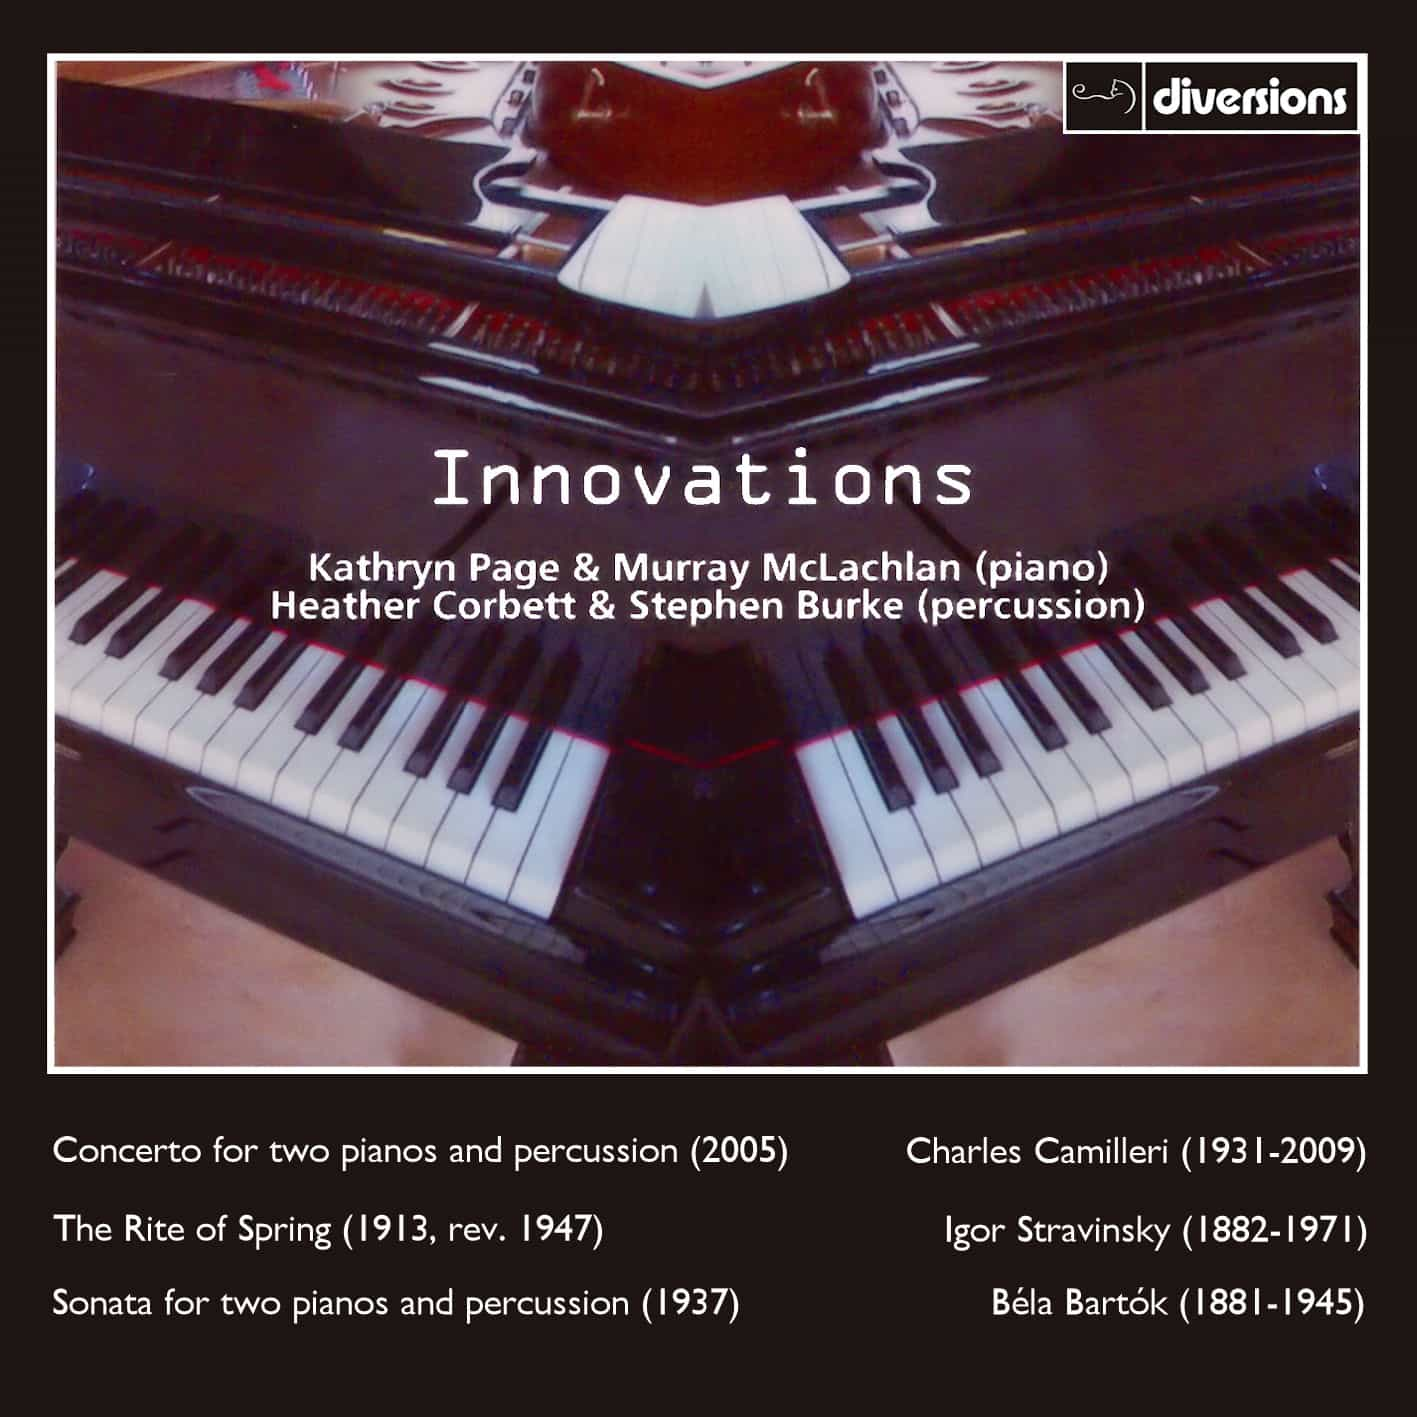 Innovations - music for two pianos and percussion